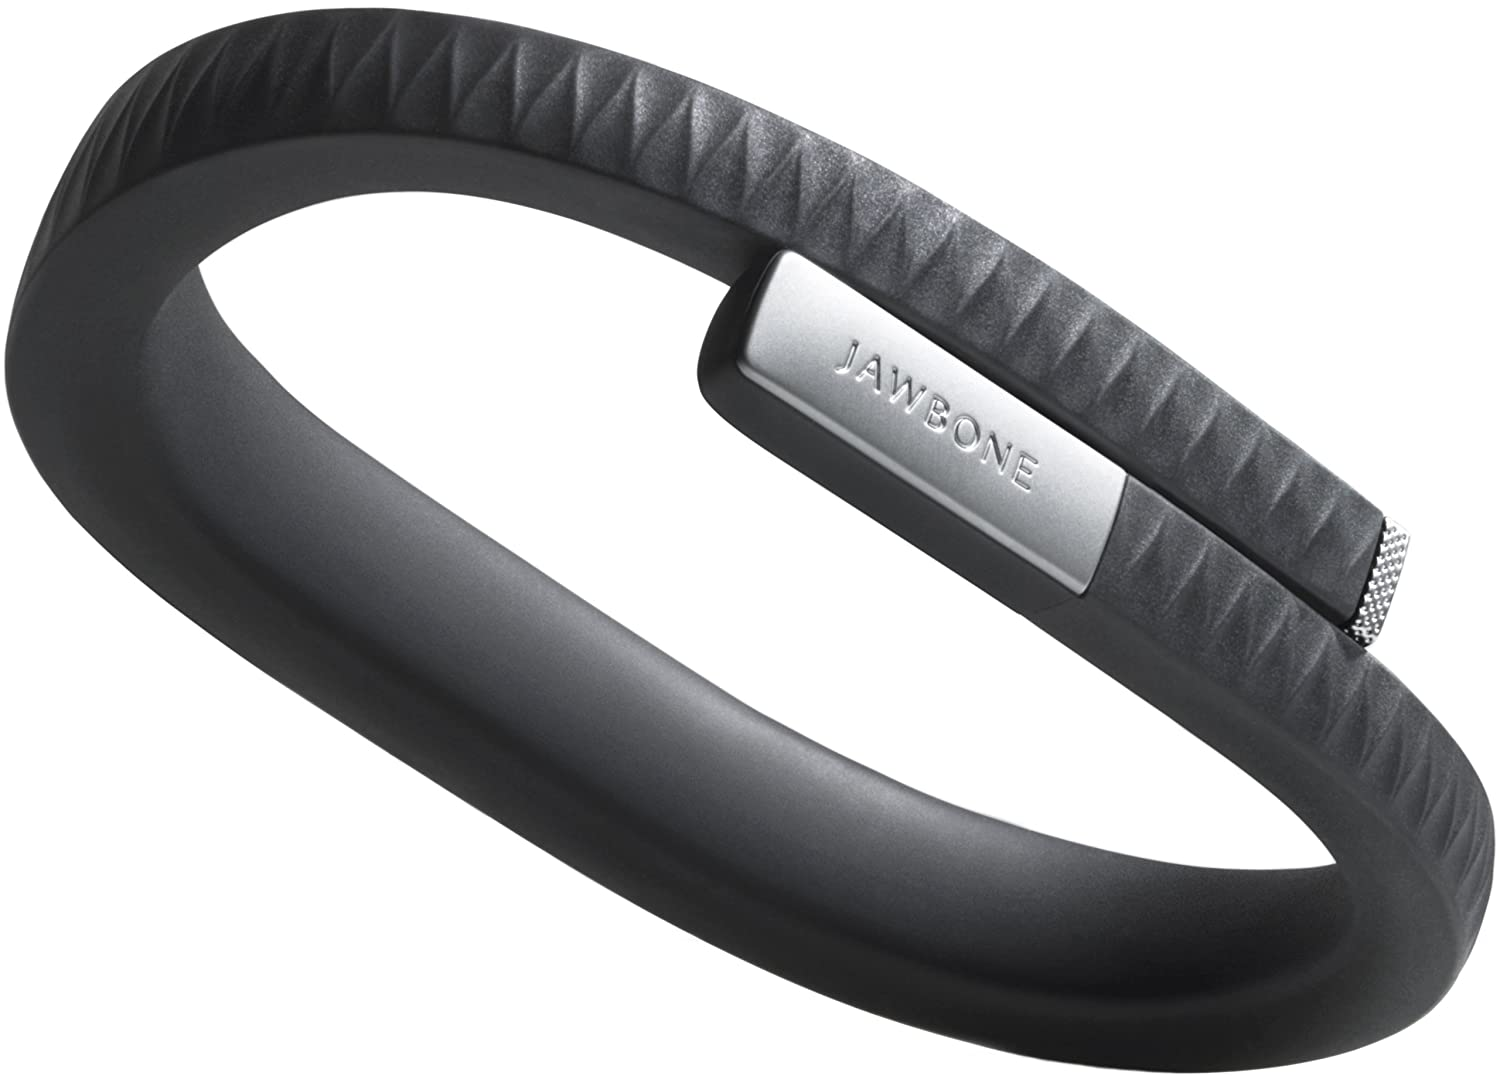 original UP jawbone band